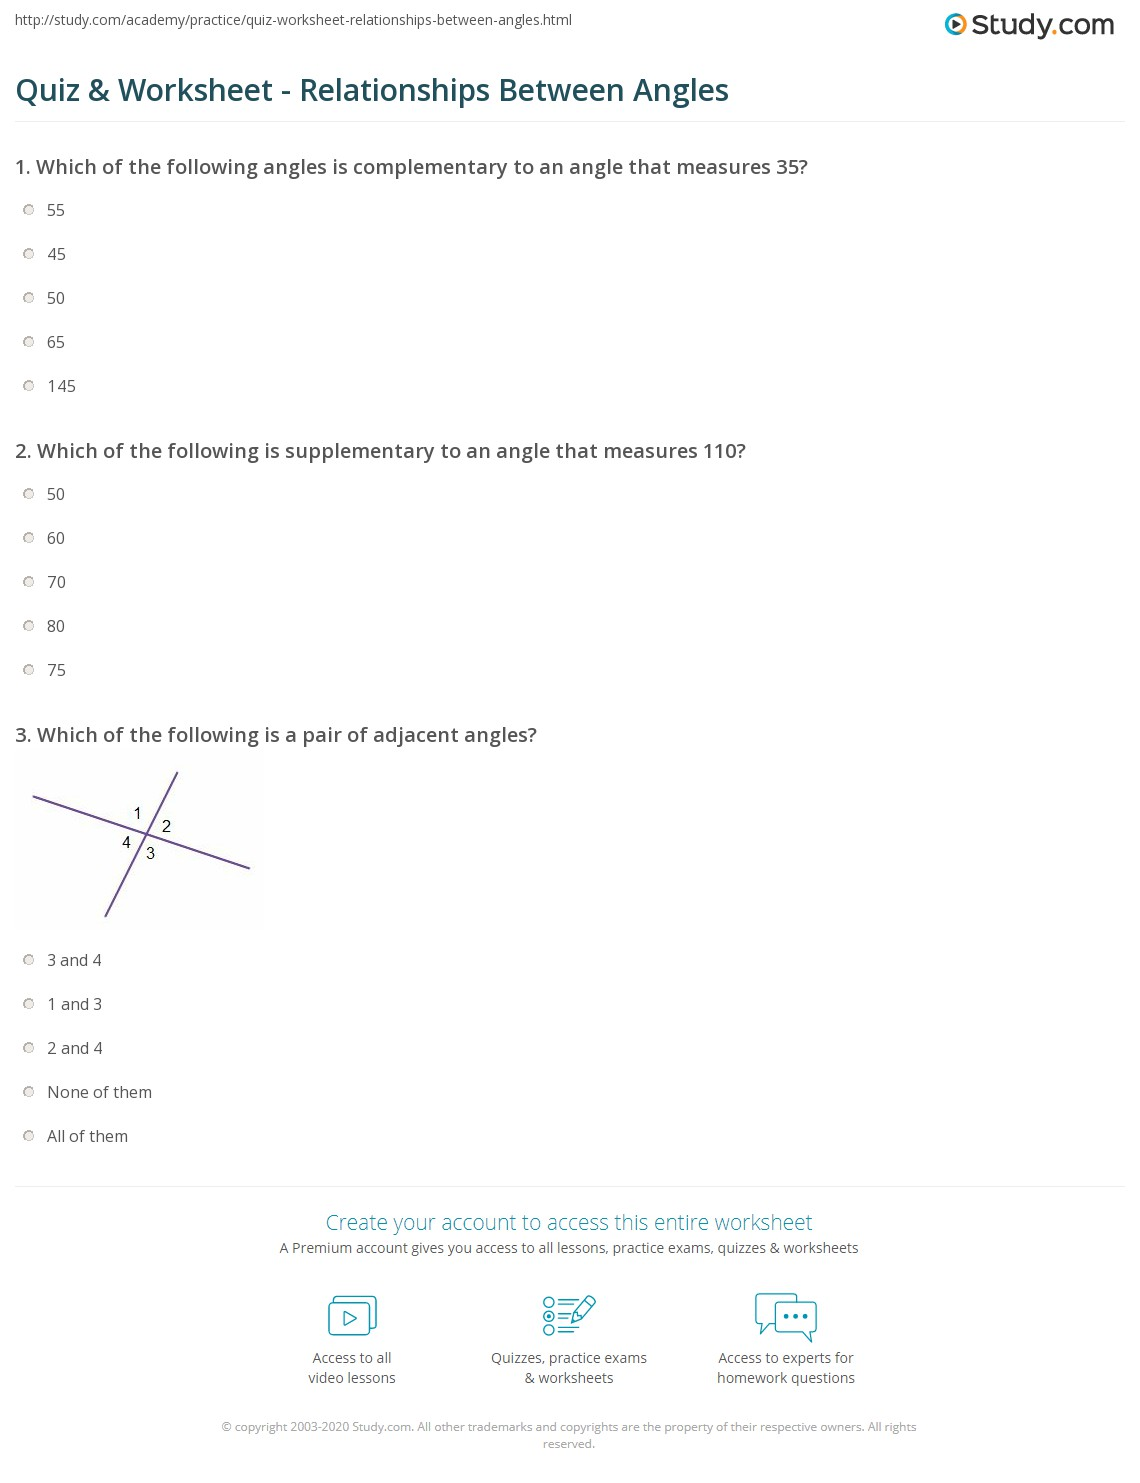 Worksheets Complementary And Supplementary Angles Worksheet quiz worksheet relationships between angles study com print complementary supplementary vertical adjacent worksheet